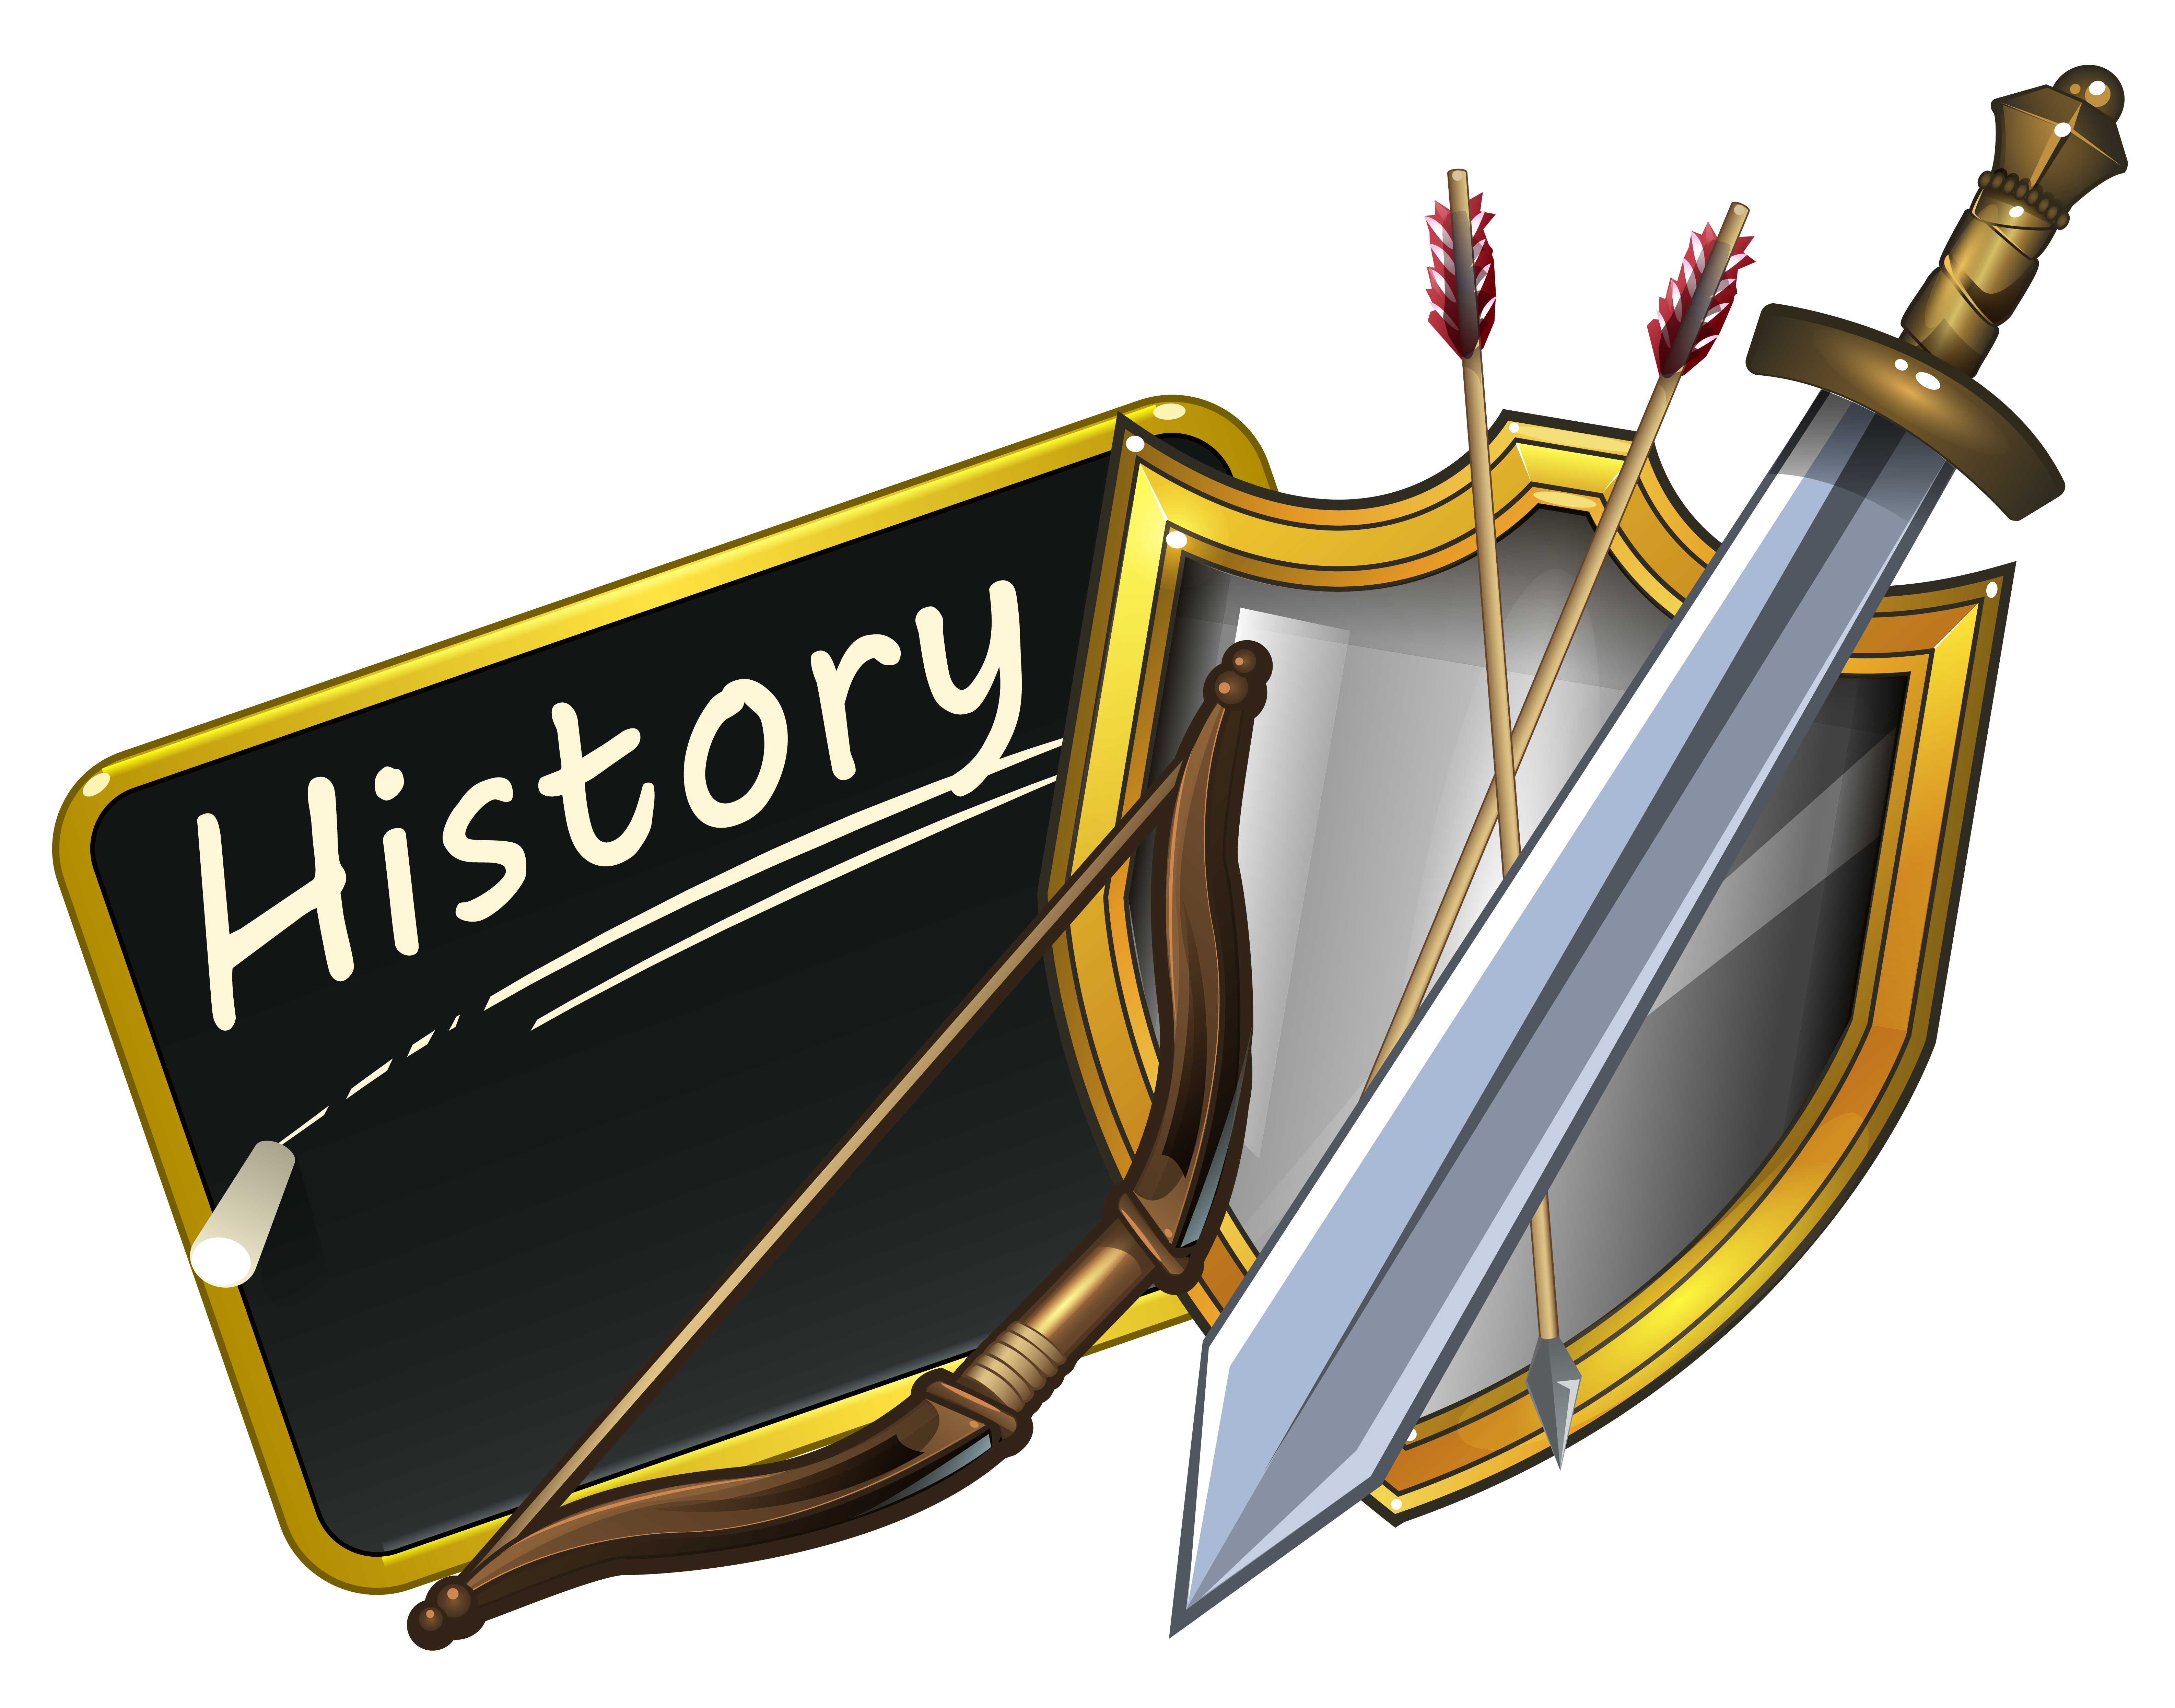 History Clipart Images.